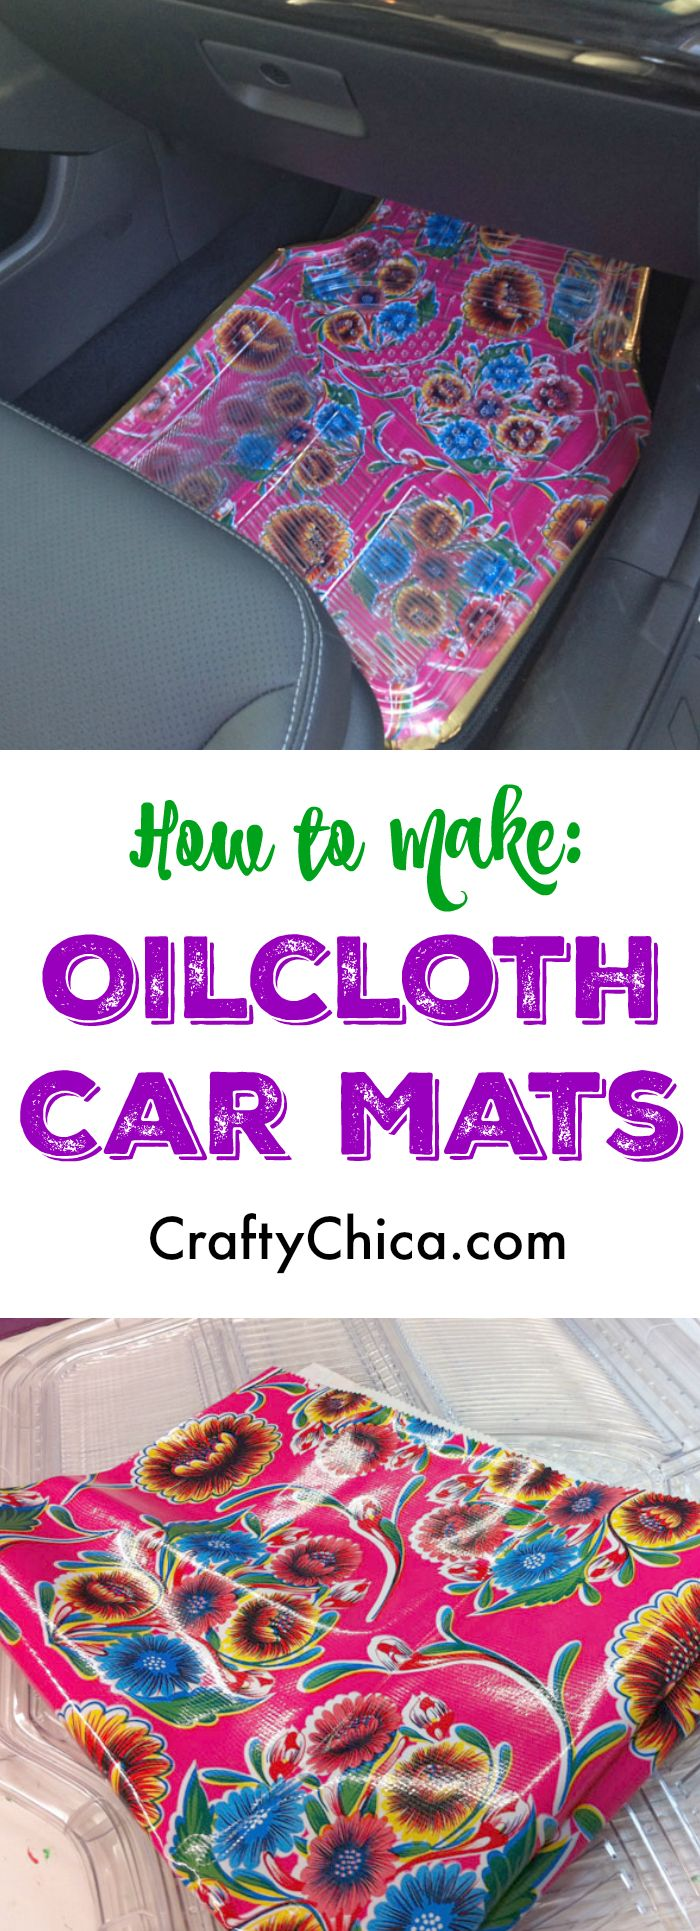 Make oilcloth car mats by Crafty Chica                              …